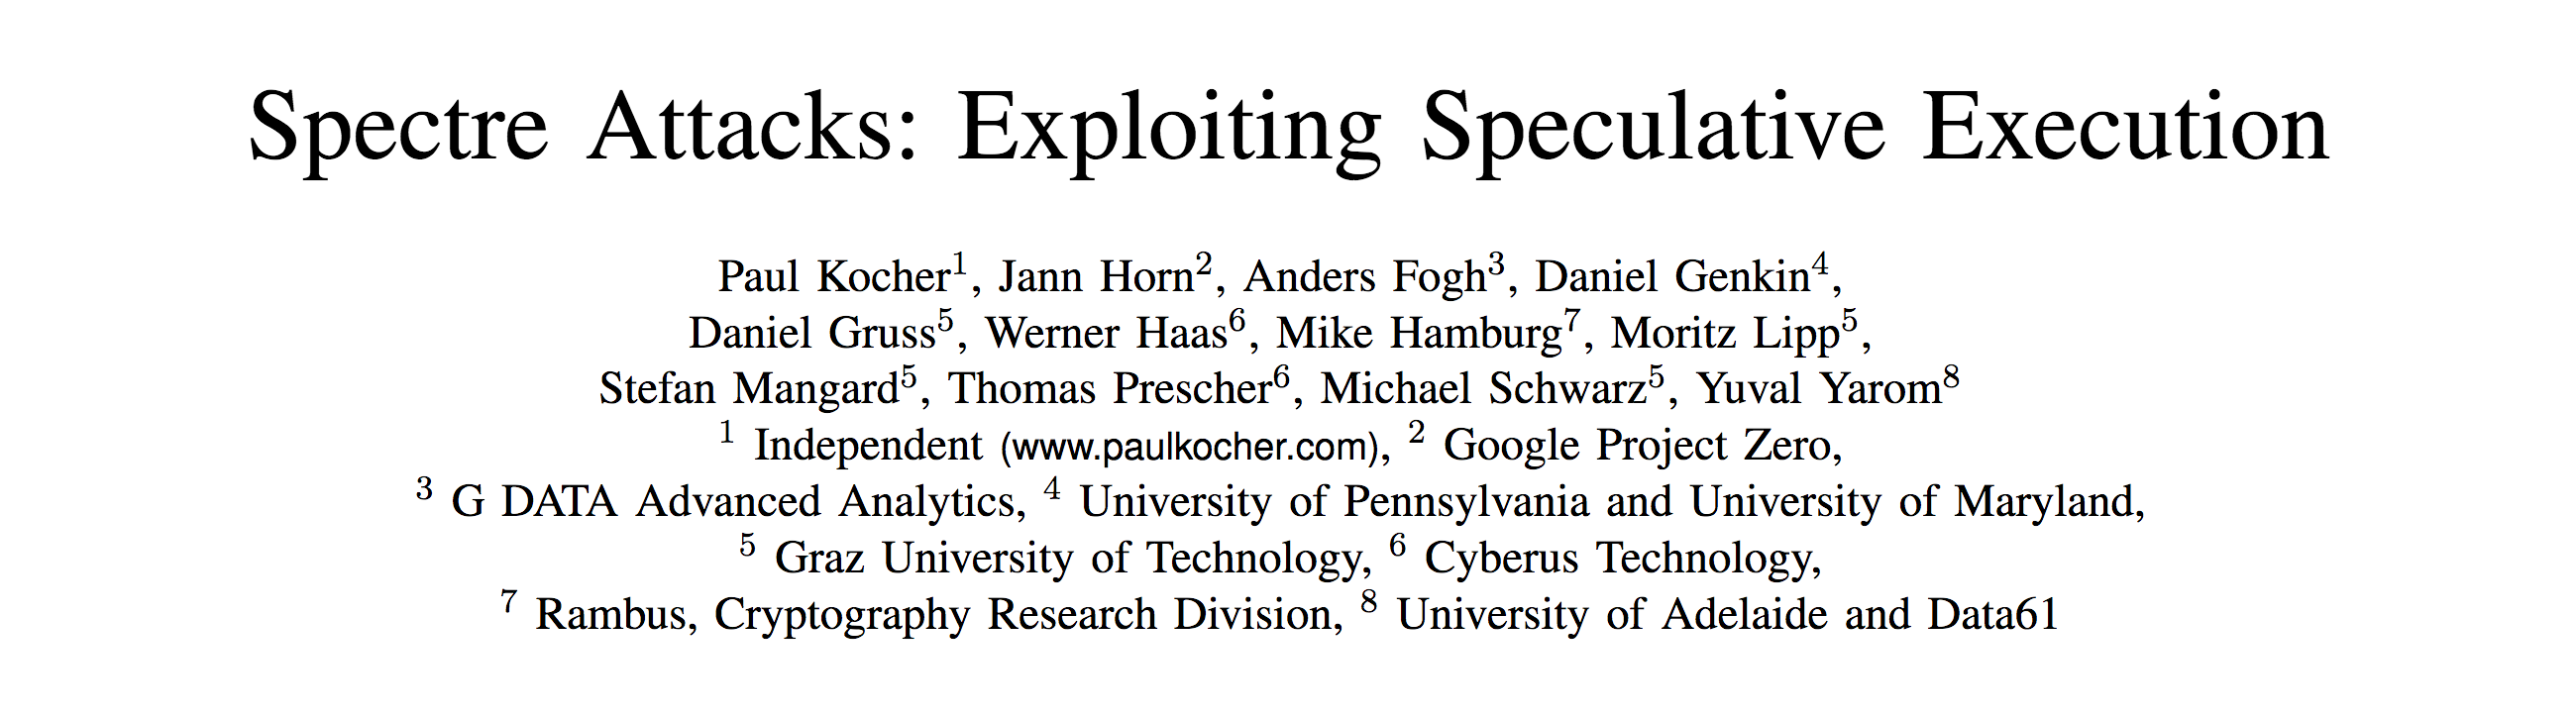 Spectre Attacks: Exploiting Speculative Execution.